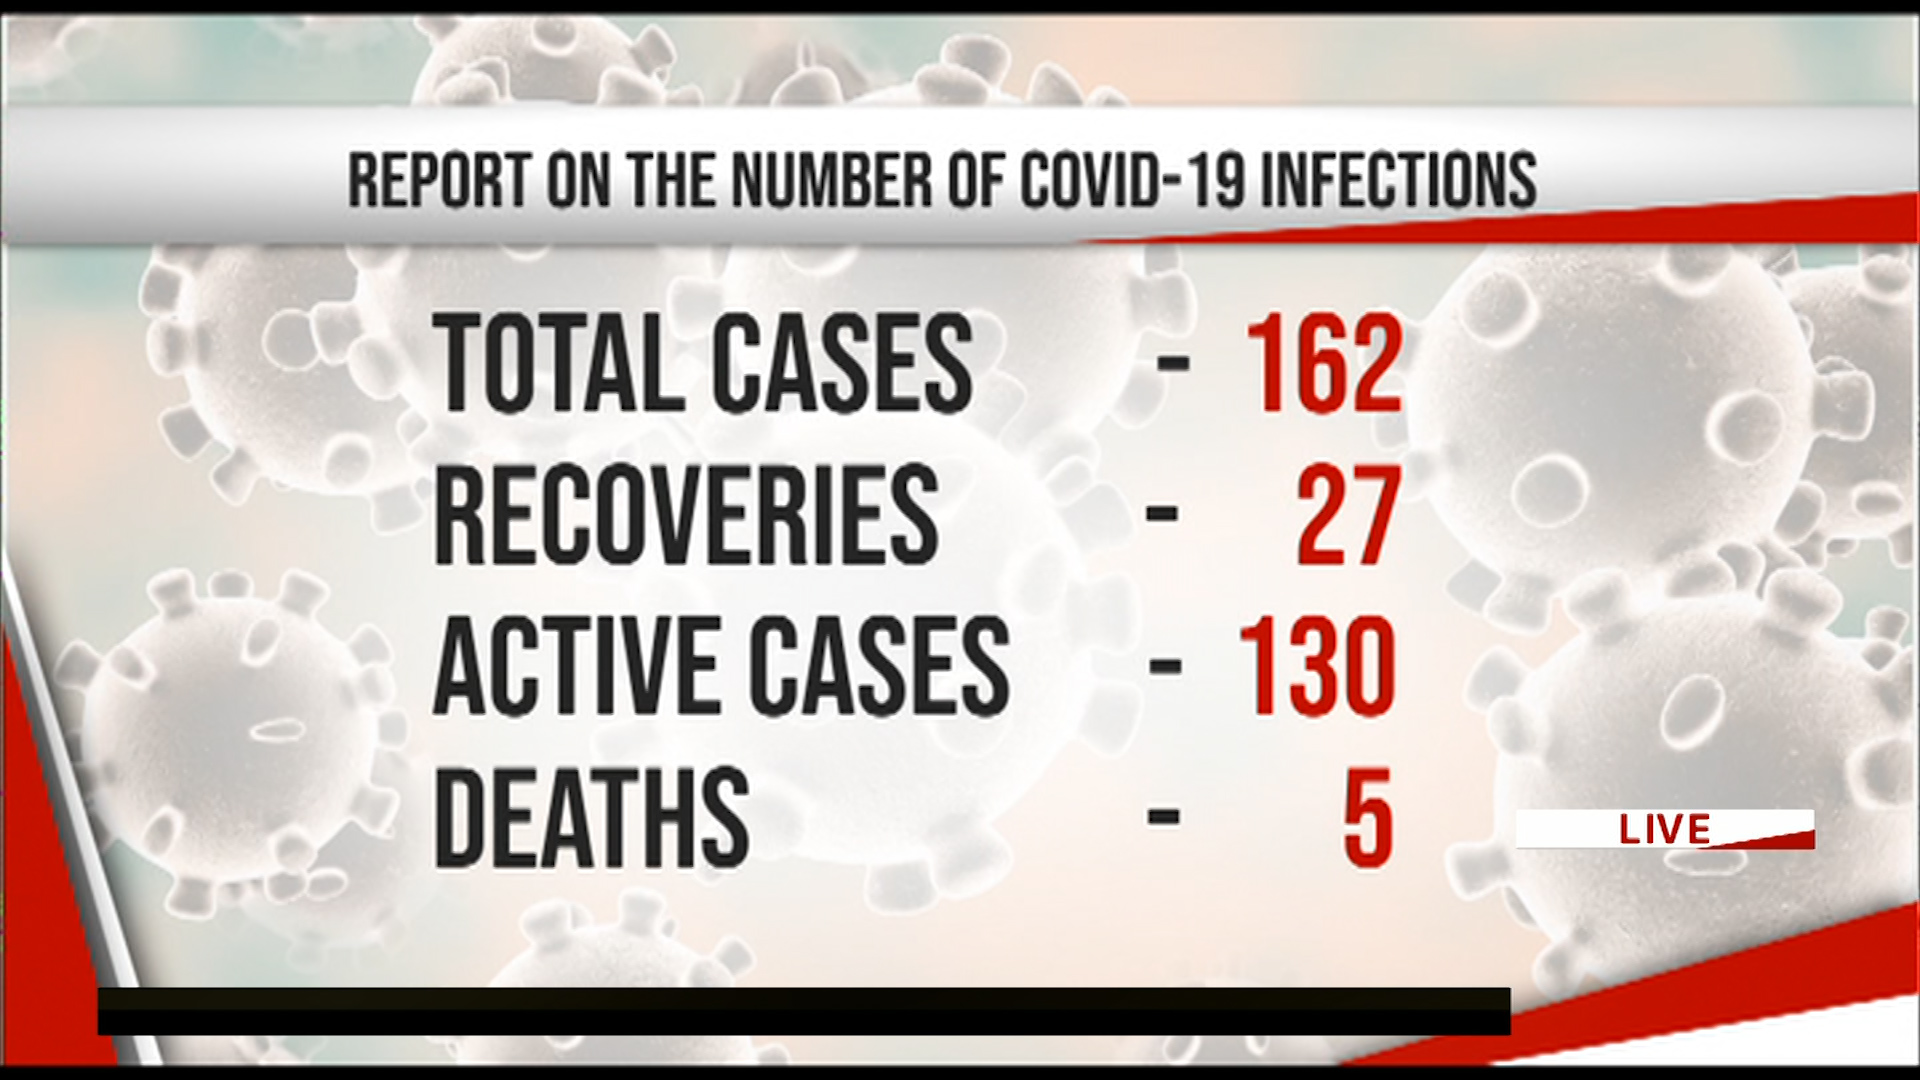 COVID-19: Deaths toll in Sri Lanka climbs to 5, positive cases at 162 (English)